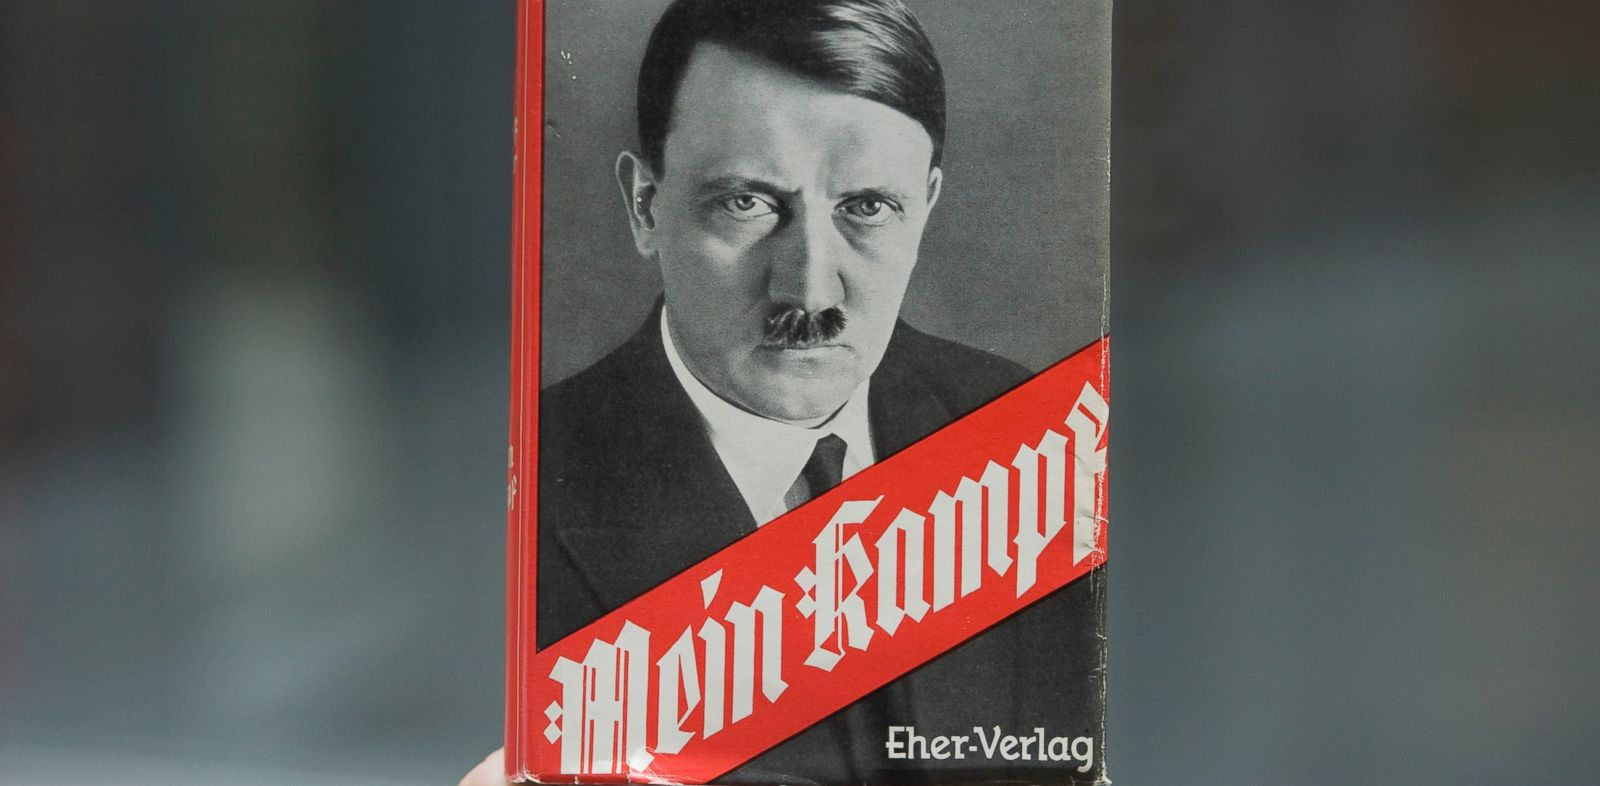 PHOTO: A copy of Mein Kampf is seen in this April 23, 2012 file photo.